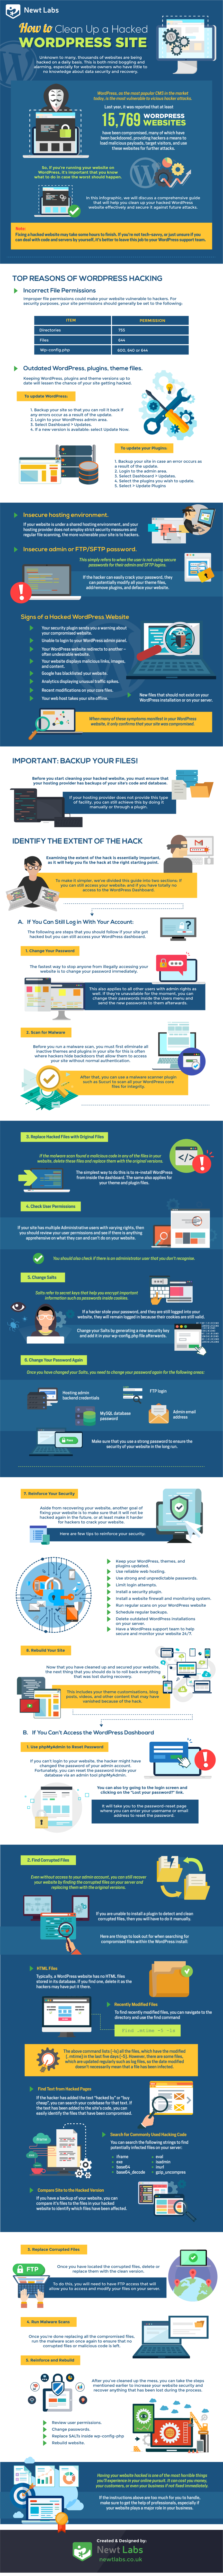 How to Clean Up a Hacked WordPress Site Infographic